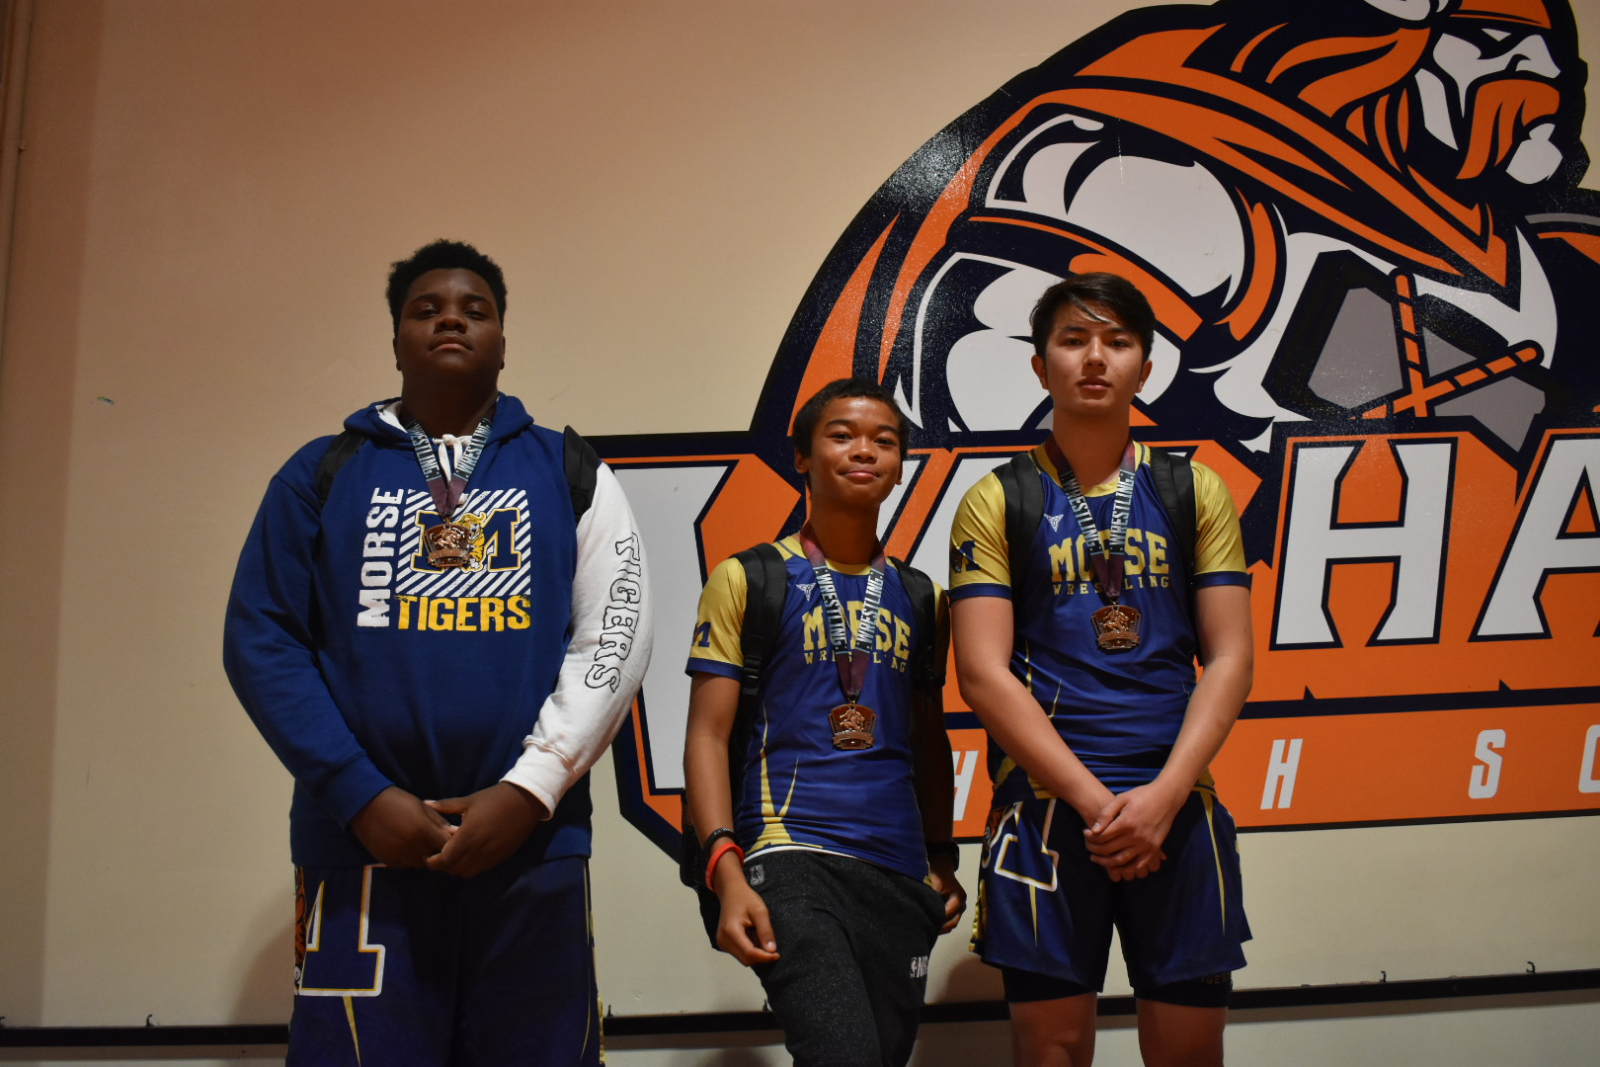 Congrats to the JV Wrestling Team